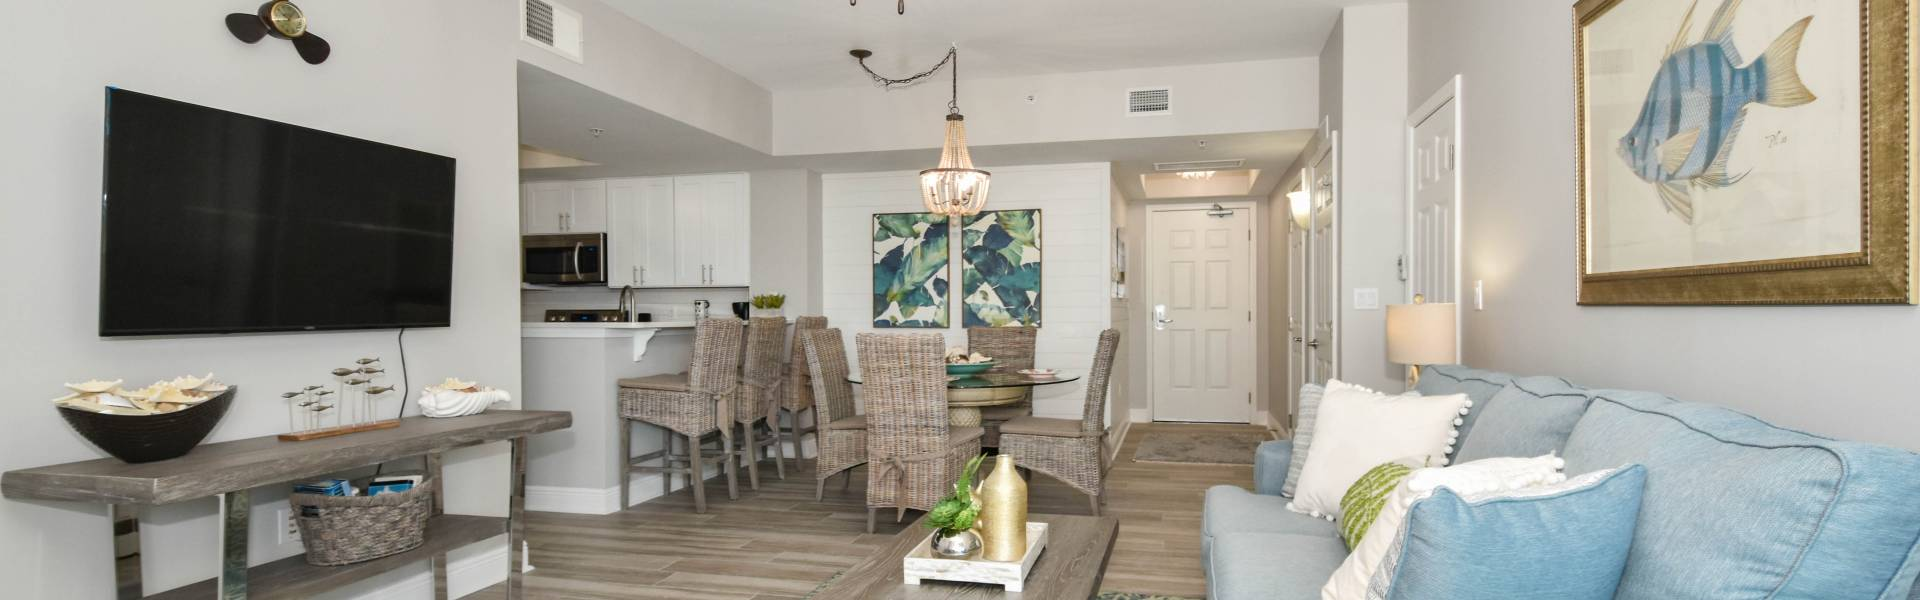 The Palms of Destin 1715 Living Area After Compass Resorts Blog Post Greatest Rental Home Remodels